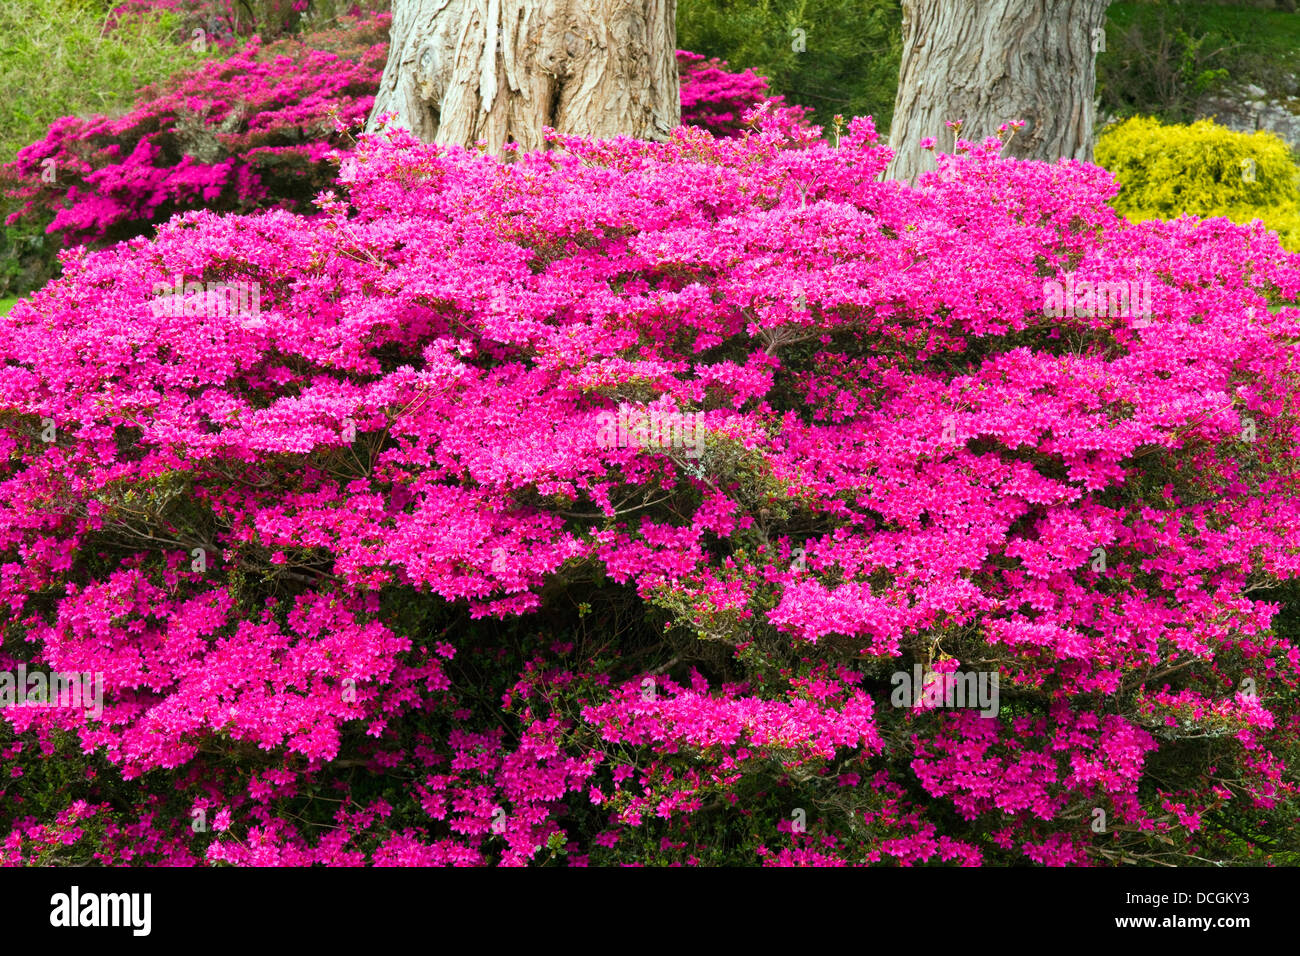 Bright pink flowers growing at the base of a tree in muckross stock bright pink flowers growing at the base of a tree in muckross gardens killarney county kerry ireland mightylinksfo